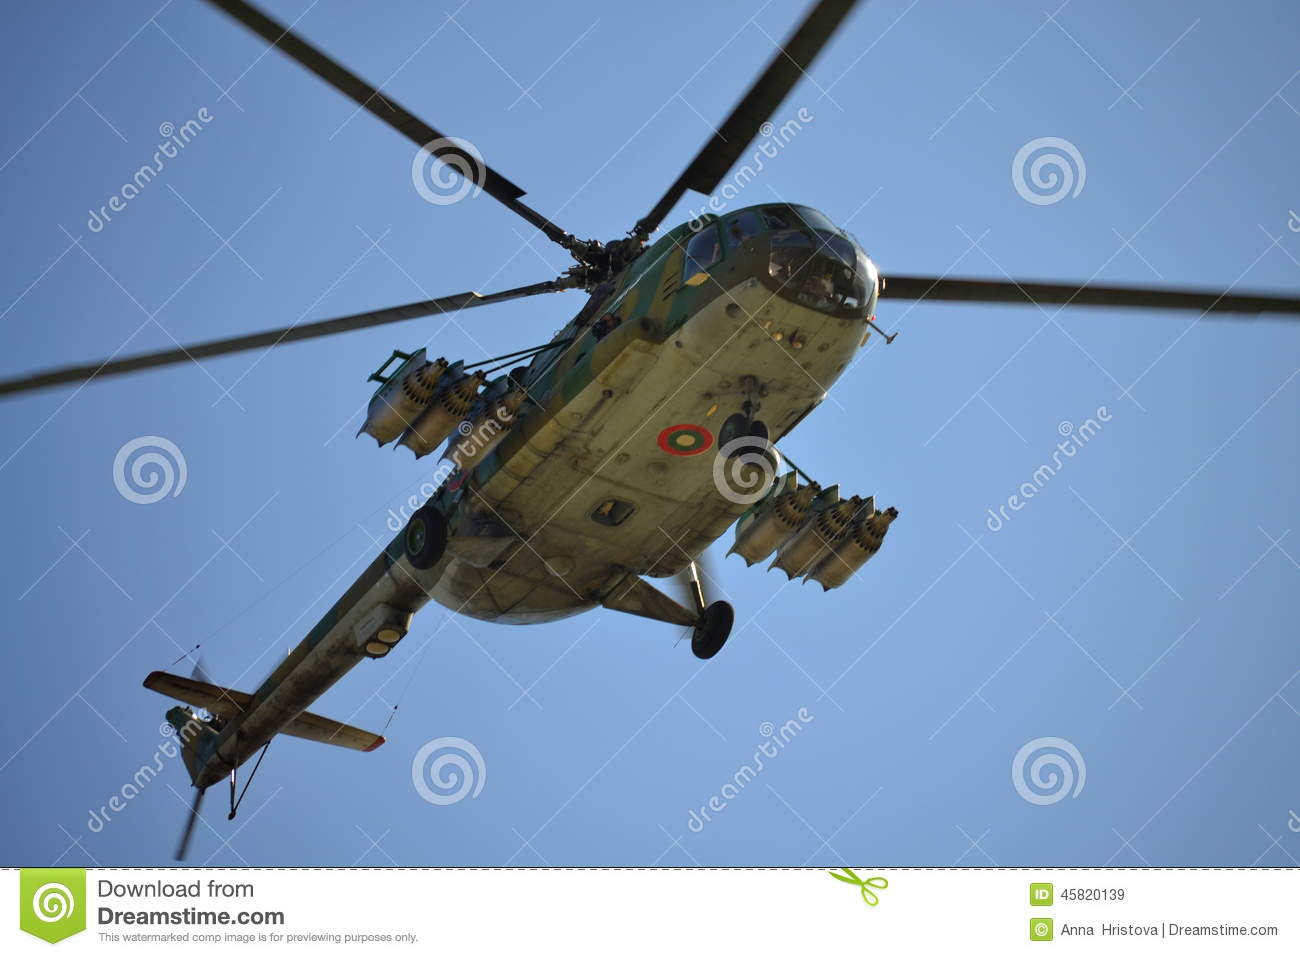 combat-helicopter-flying-underneath-view